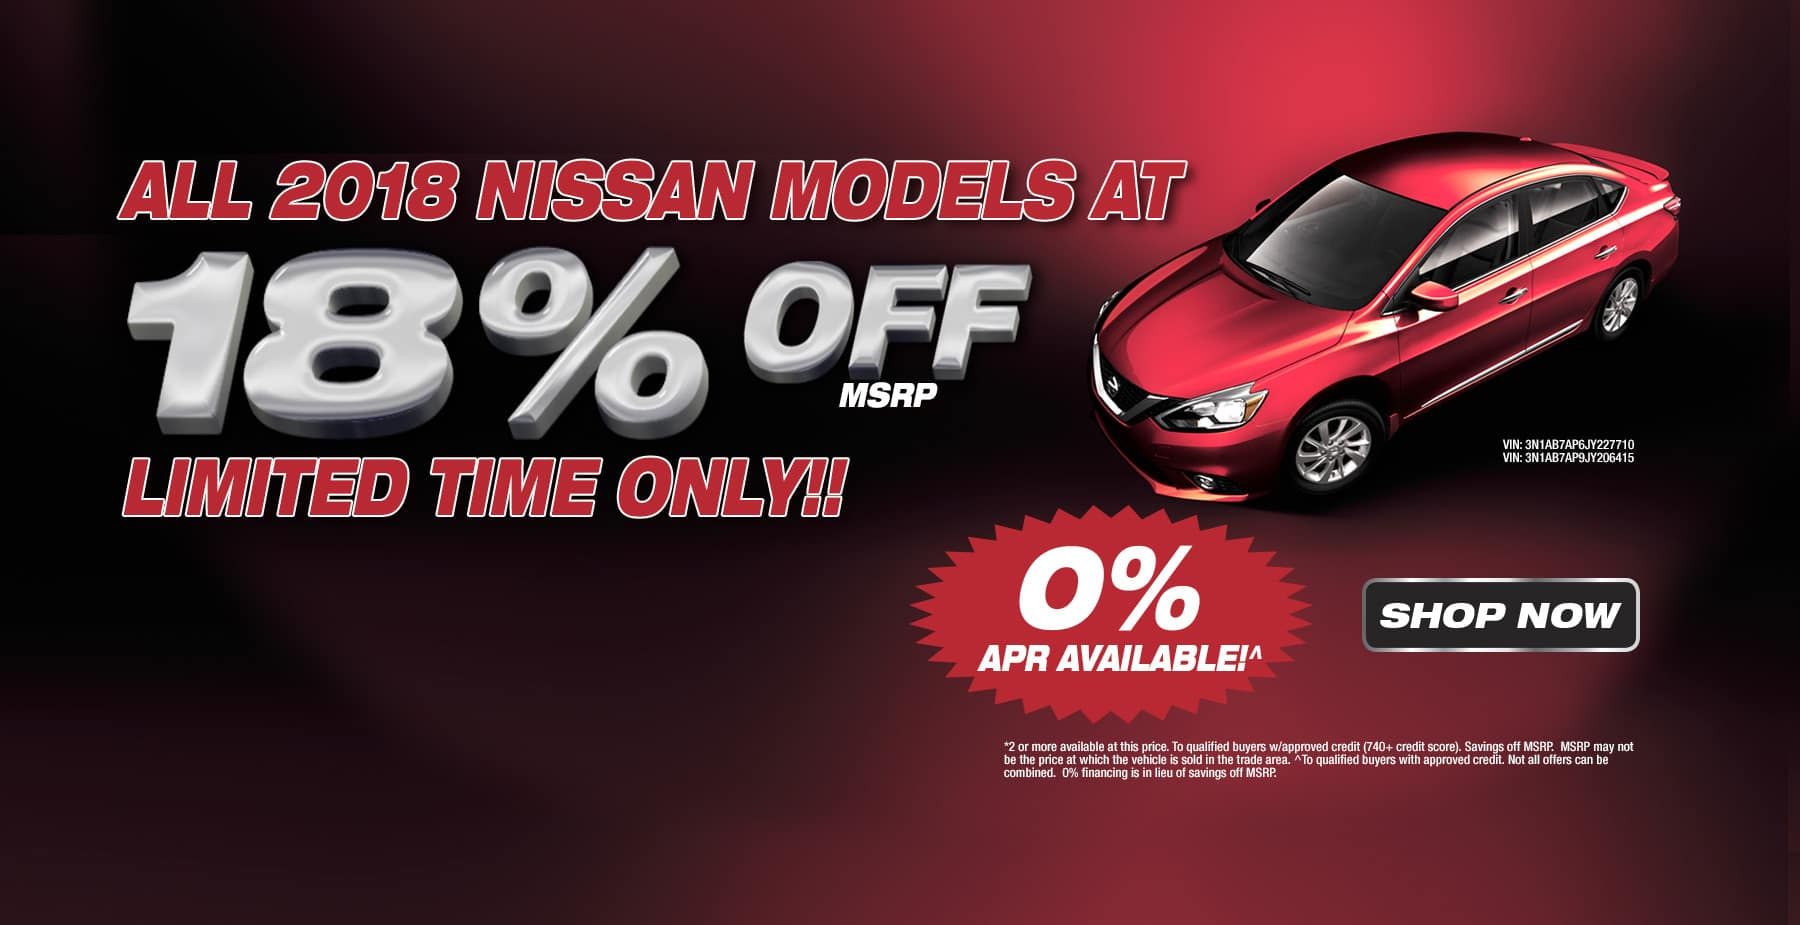 All 2018 Nissan Models at 18% OFF MSRP at Star Nissan!